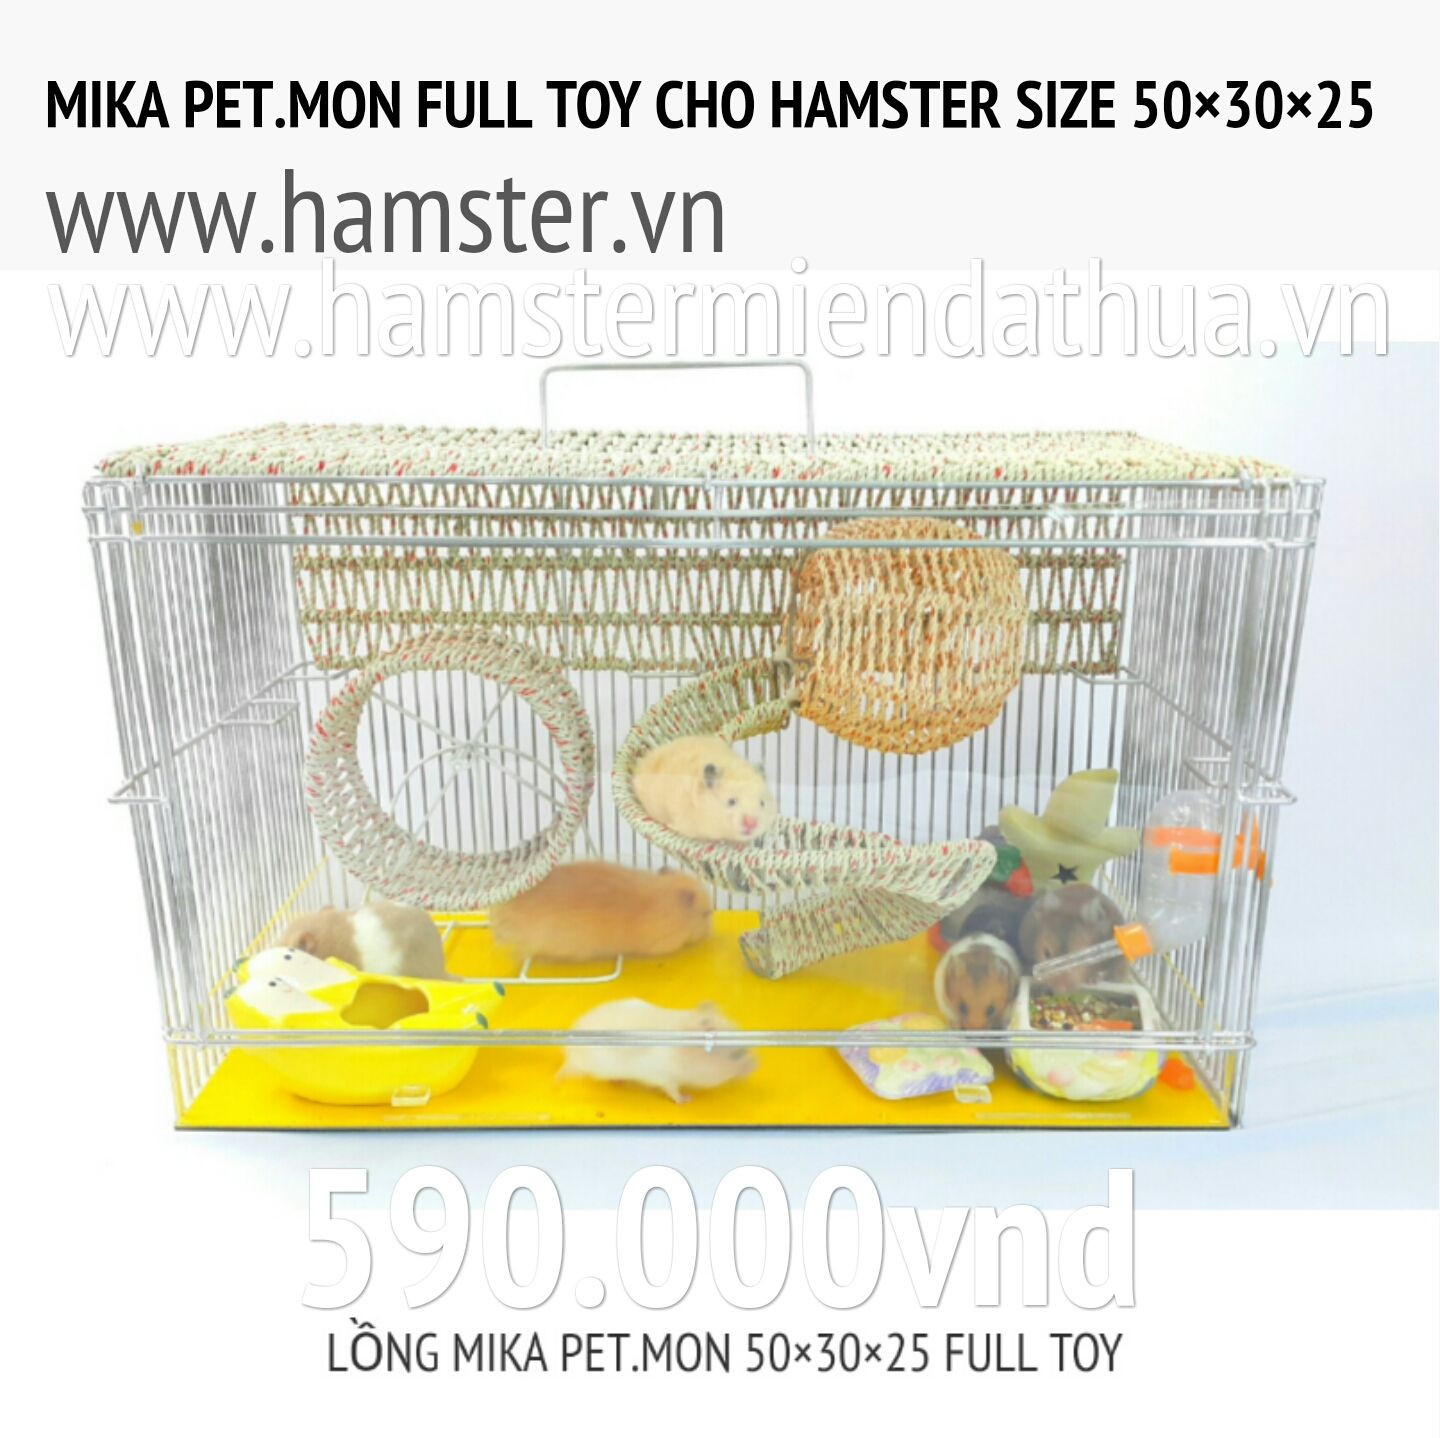 thiết kế mới mika pet.mon cage hamster 590